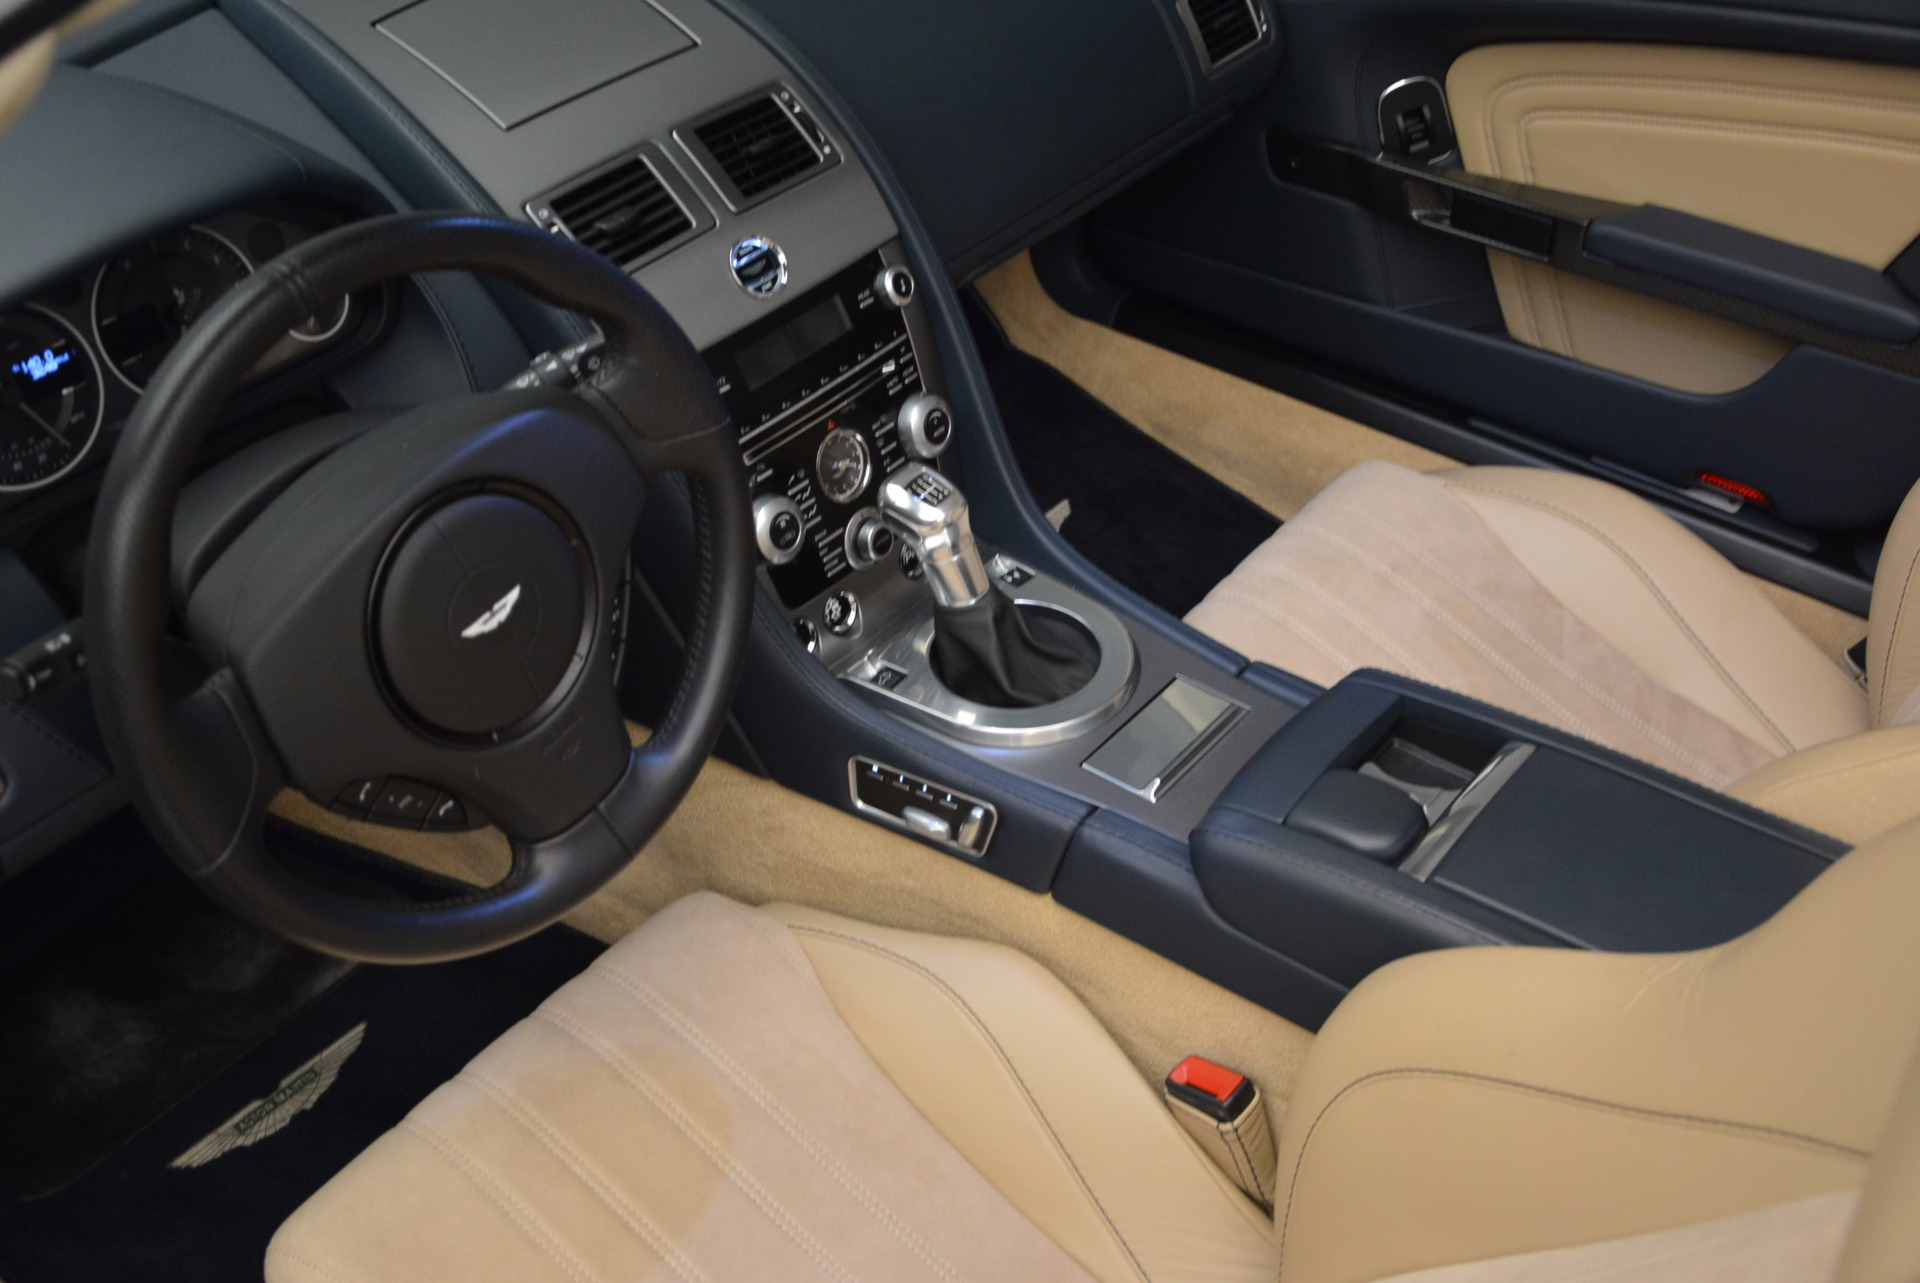 Used 2012 Aston Martin DBS Volante For Sale In Westport, CT 644_p25